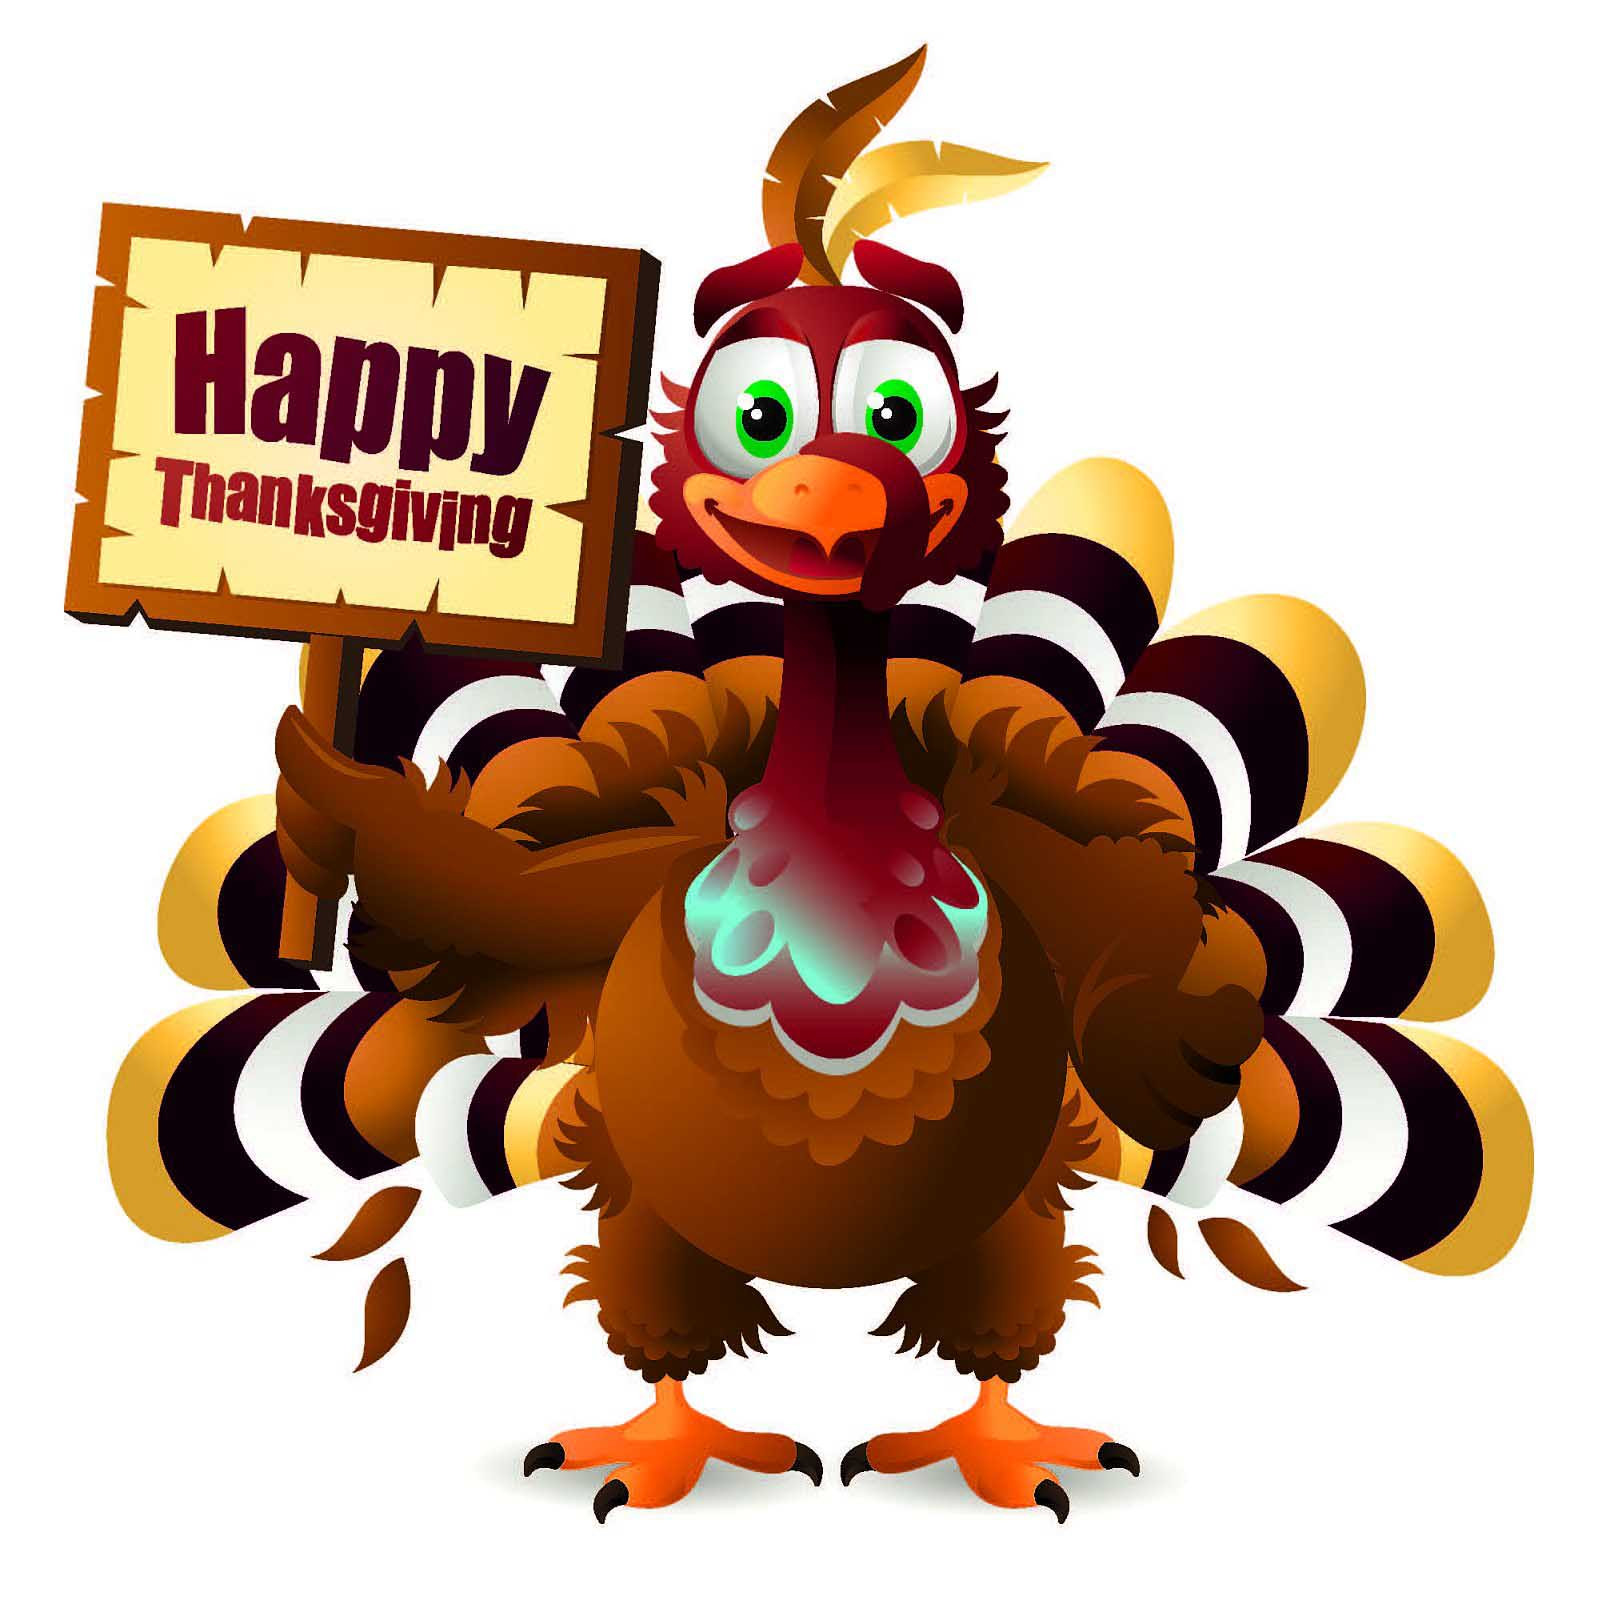 Thanksgiving Turkey Image  2016 Thanksgiving Charlie Brown Wallpapers & Clipart s